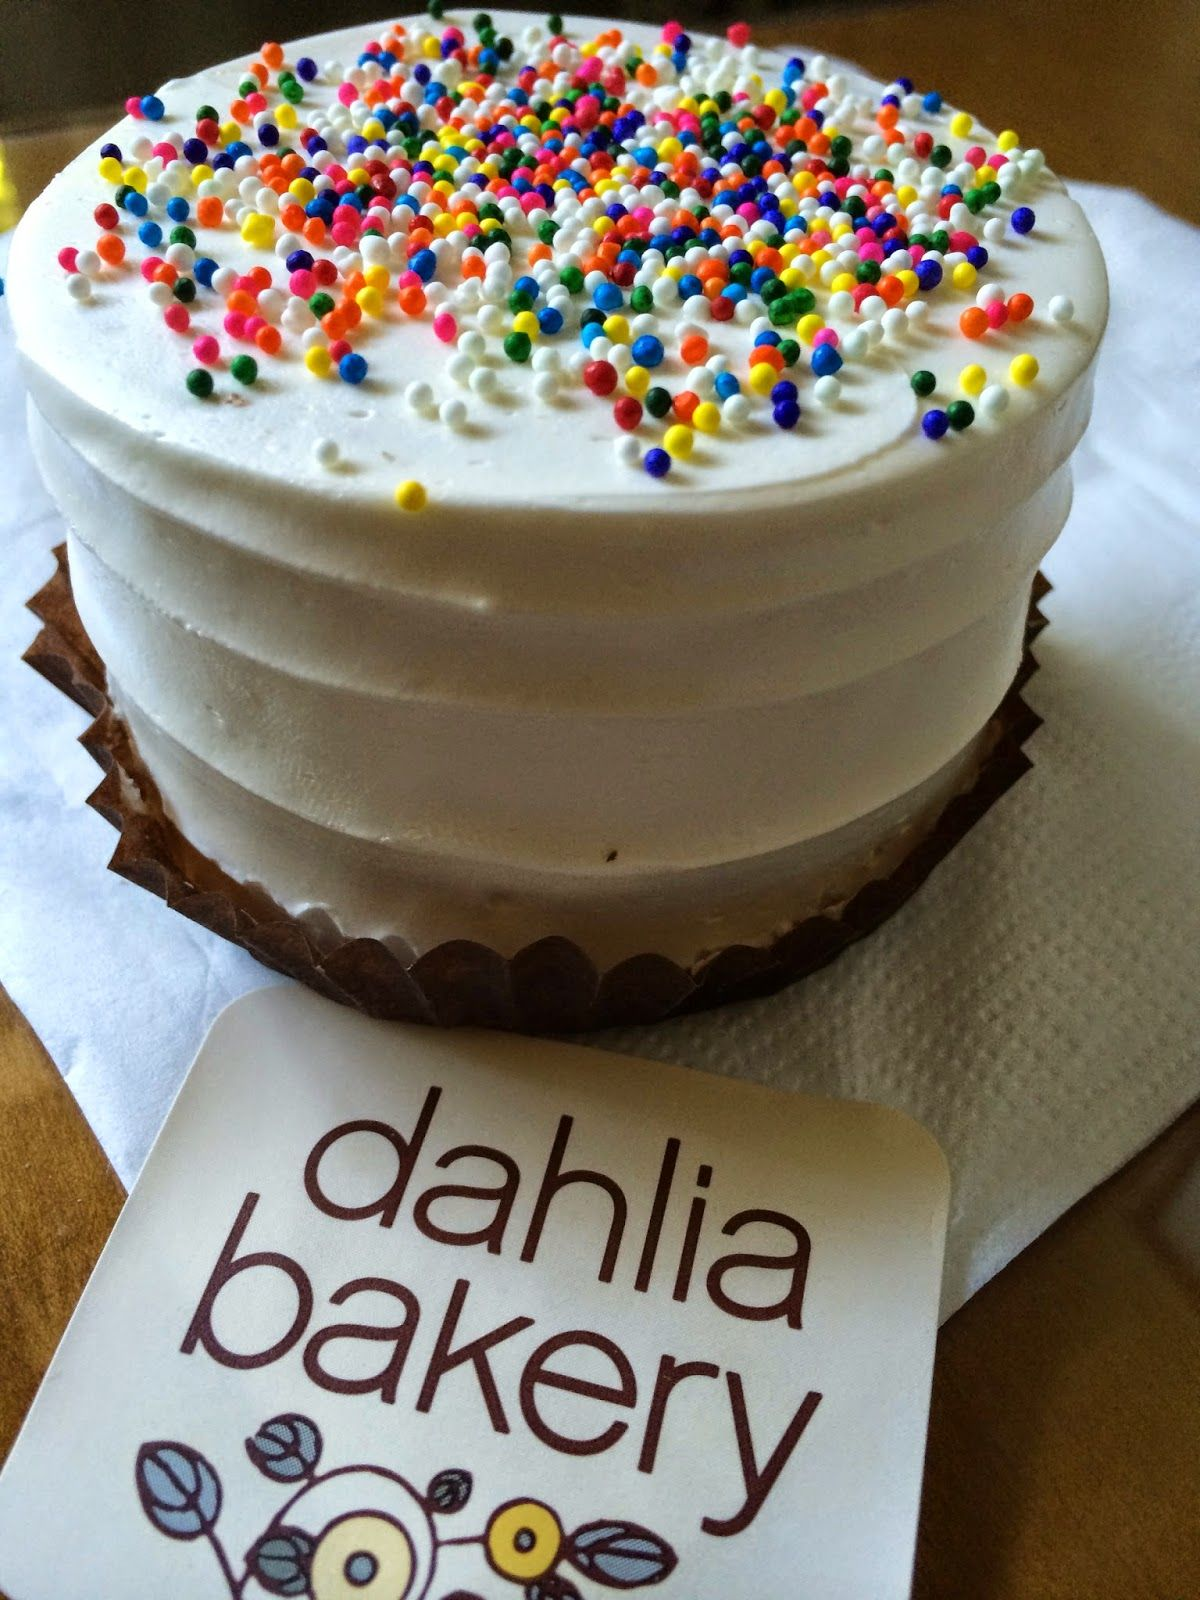 Dahlia Bakery Seattle TomDouglas Cute Birthday Cakes Places To Eat